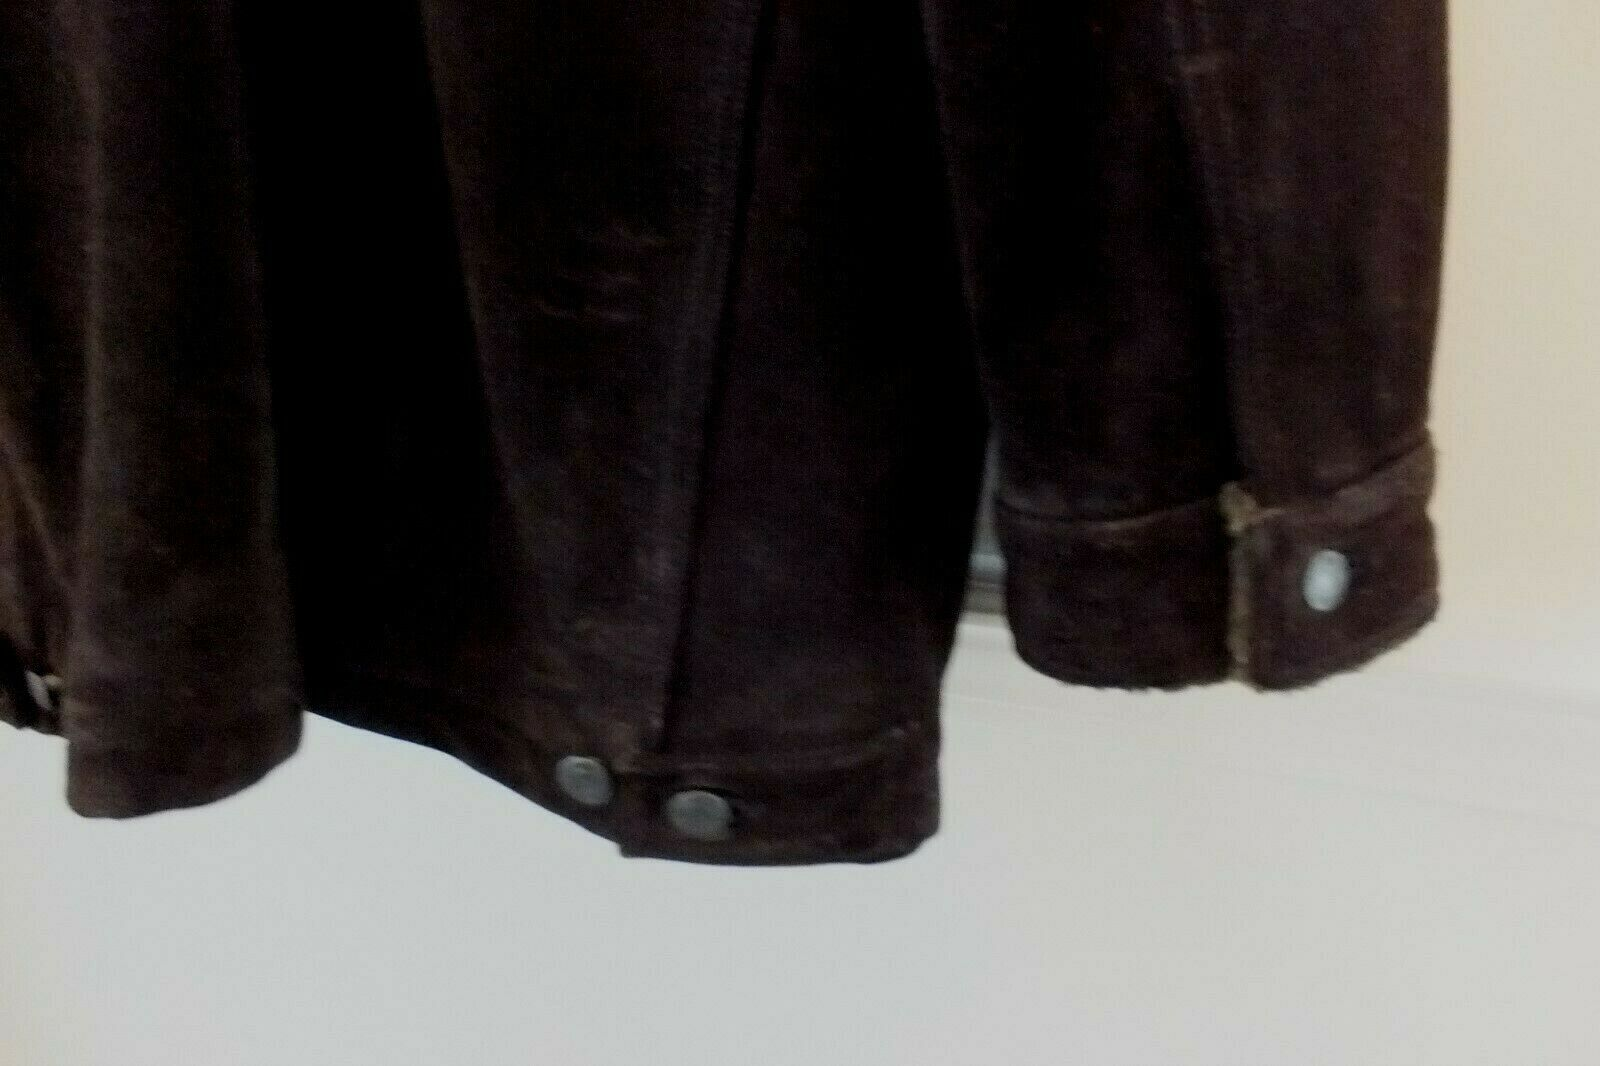 GAP Mens Suede Leather Coat Jacket Thick & Heavy Sherpa Lined Size XXL Dk Brown image 6